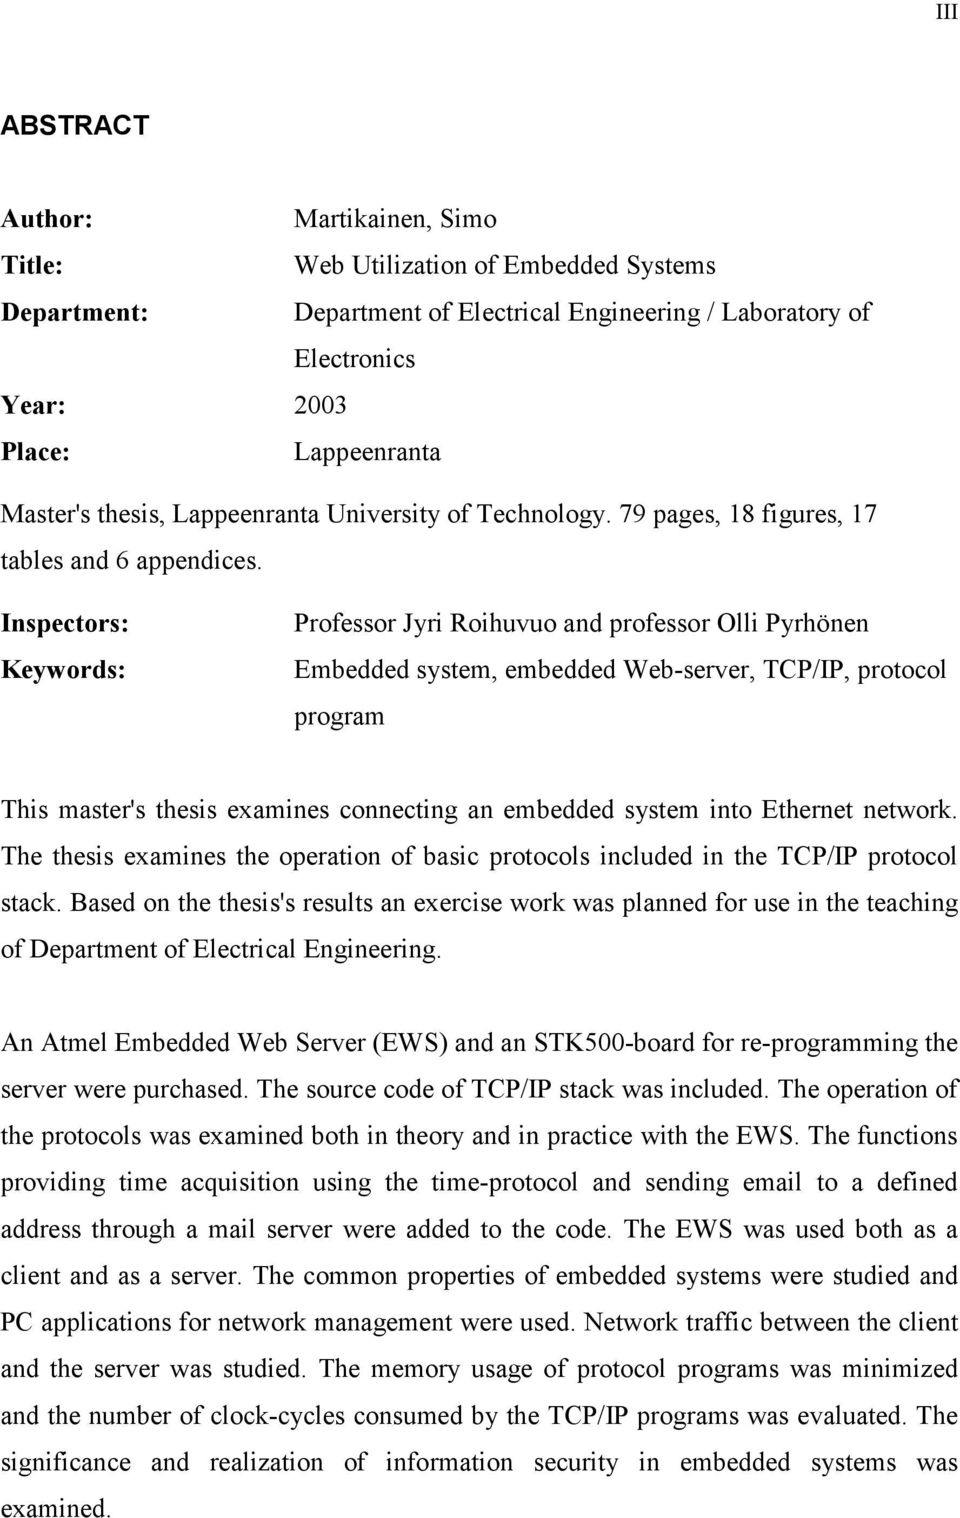 Inspectors: Keywords: Professor Jyri Roihuvuo and professor Olli Pyrhönen Embedded system, embedded Web-server, TCP/IP, protocol program This master's thesis examines connecting an embedded system